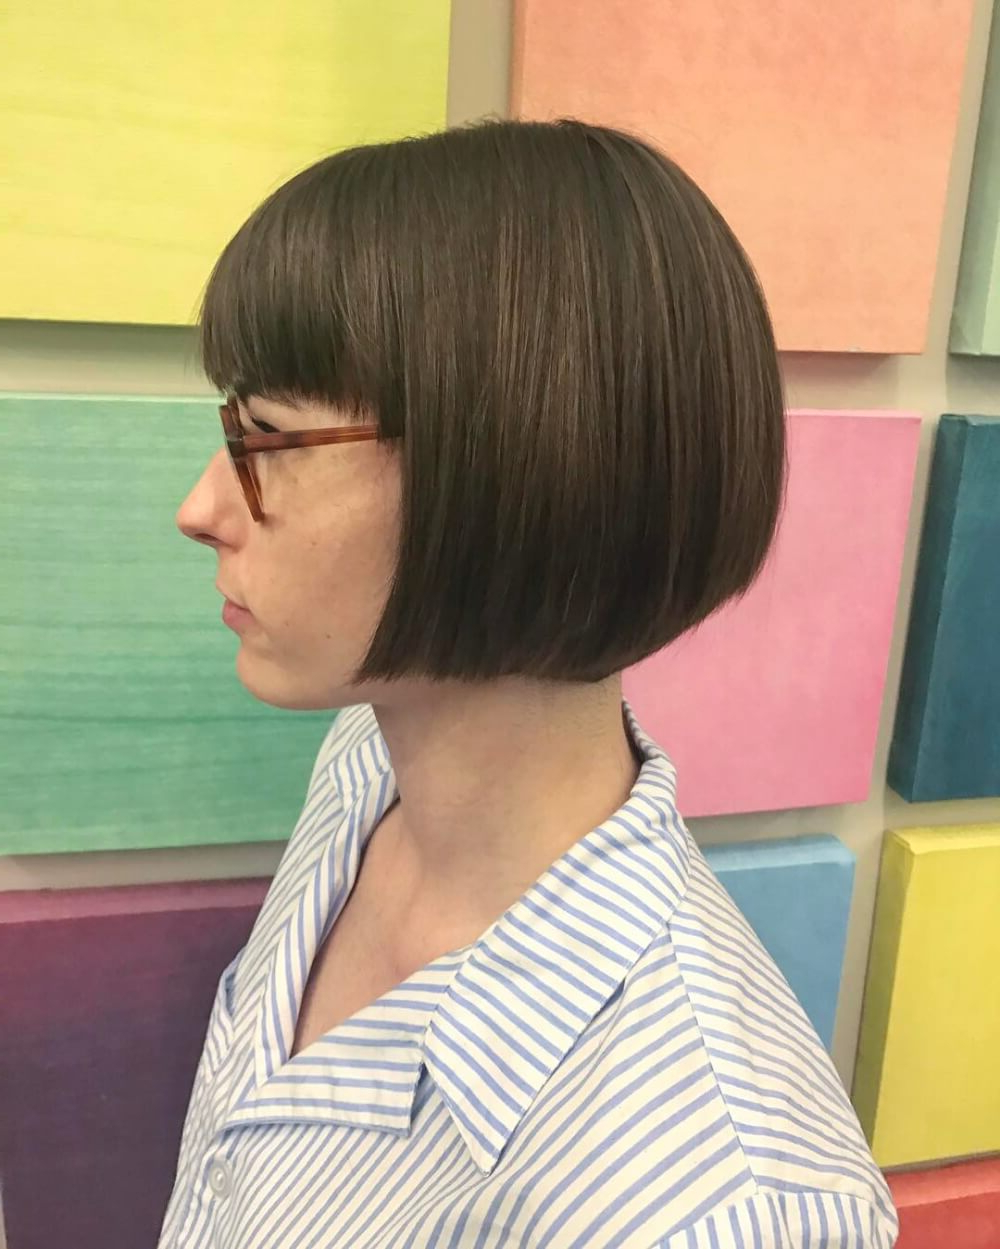 49 Chic Short Bob Hairstyles & Haircuts For Women In 2018 Within Short Bob Hairstyles With Tapered Back (View 5 of 20)